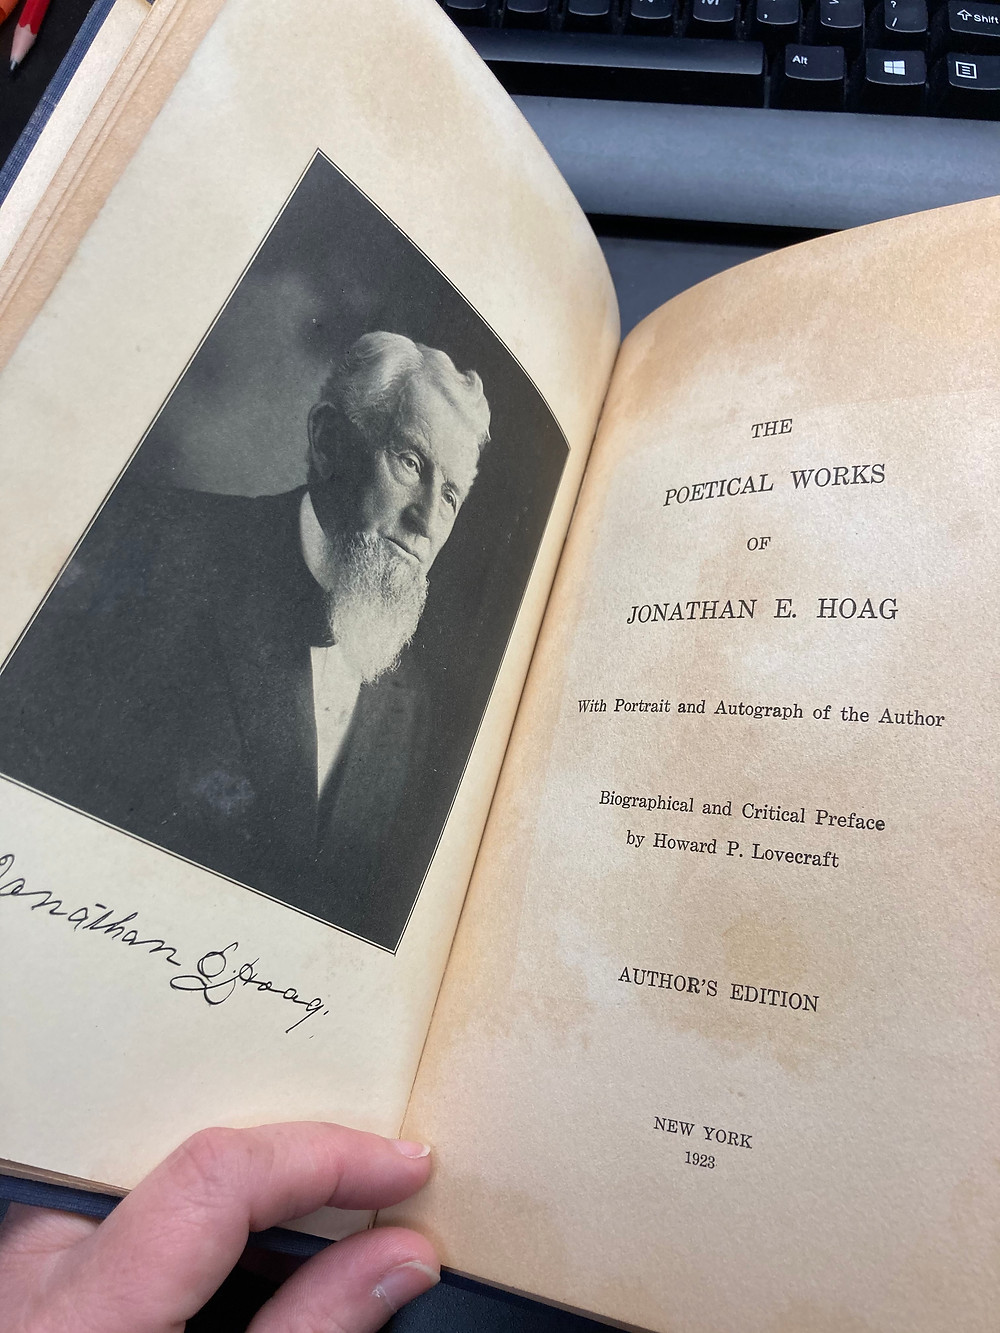 The Poetical Works of Jonathan Elihu Hoag with Introduction by HP Lovecraft (1923) <Holden Collection, The Folklife Center at Crandall Public Library>